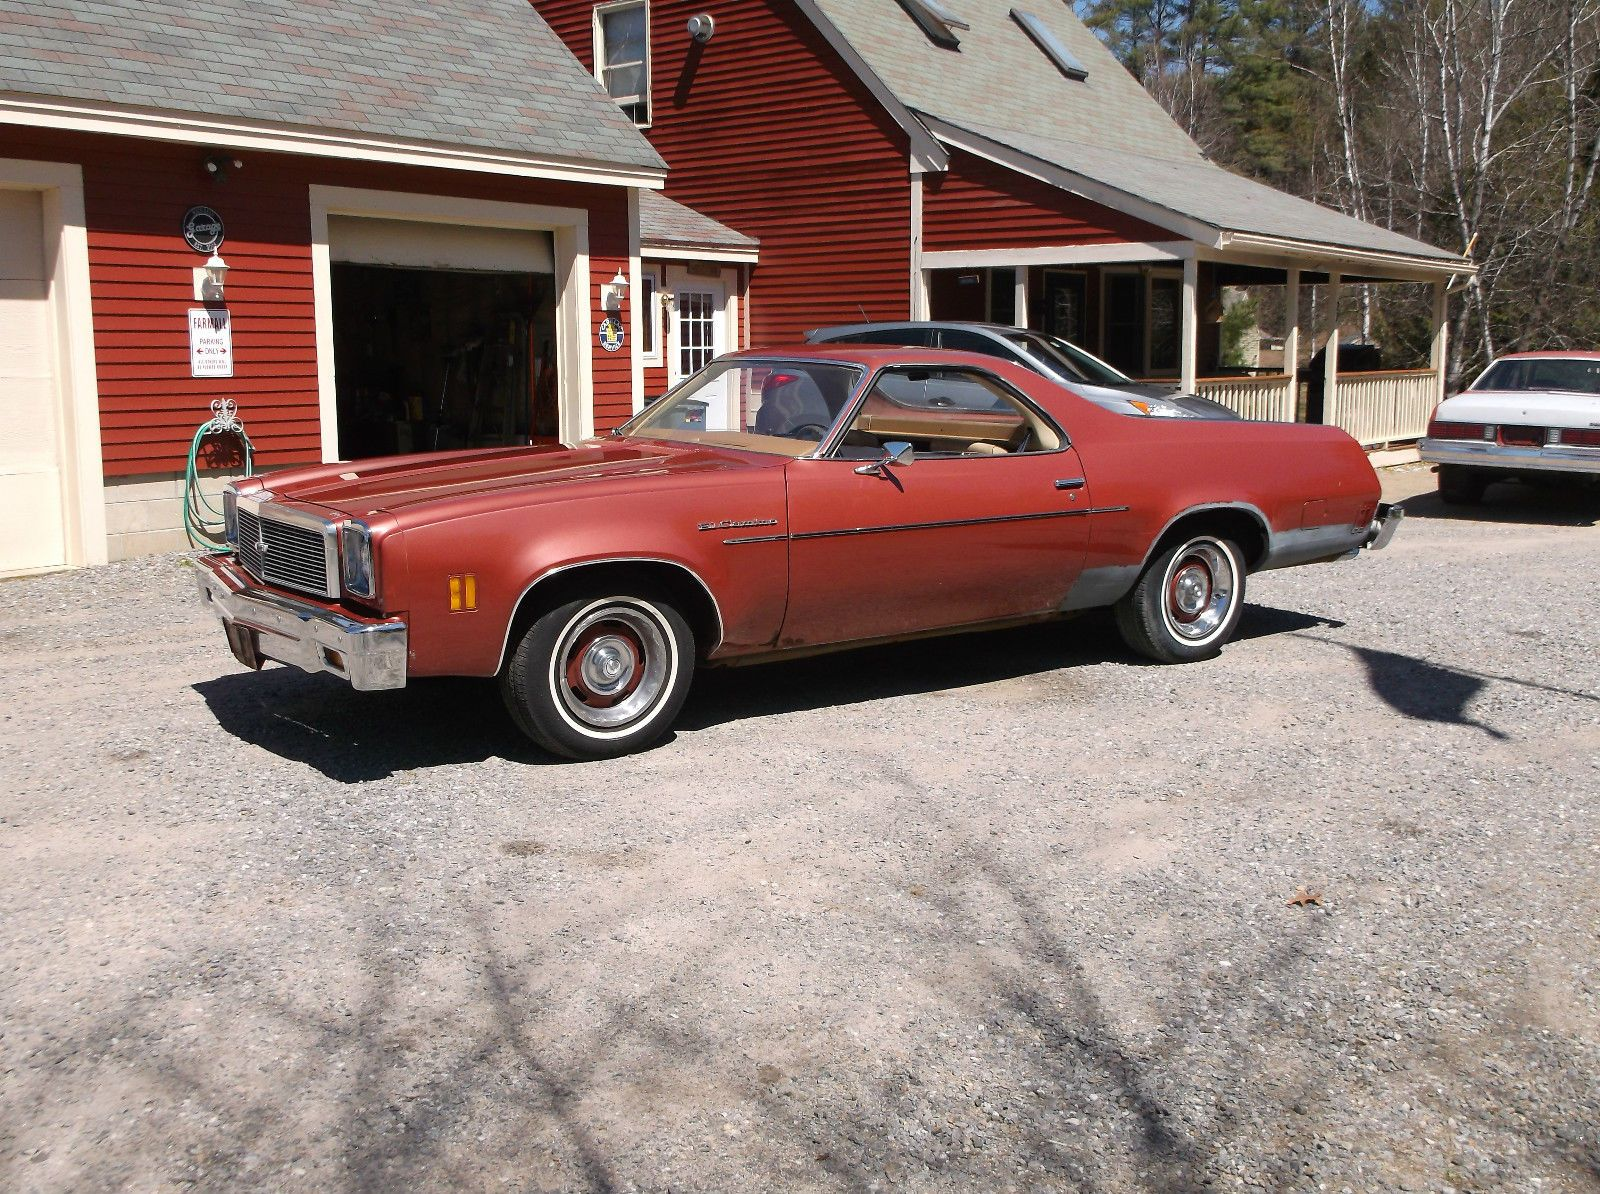 All Chevy 1976 chevy el camino : Chevrolet: Other Pickups El Camino 1976 chevrolet el camino malibu ...